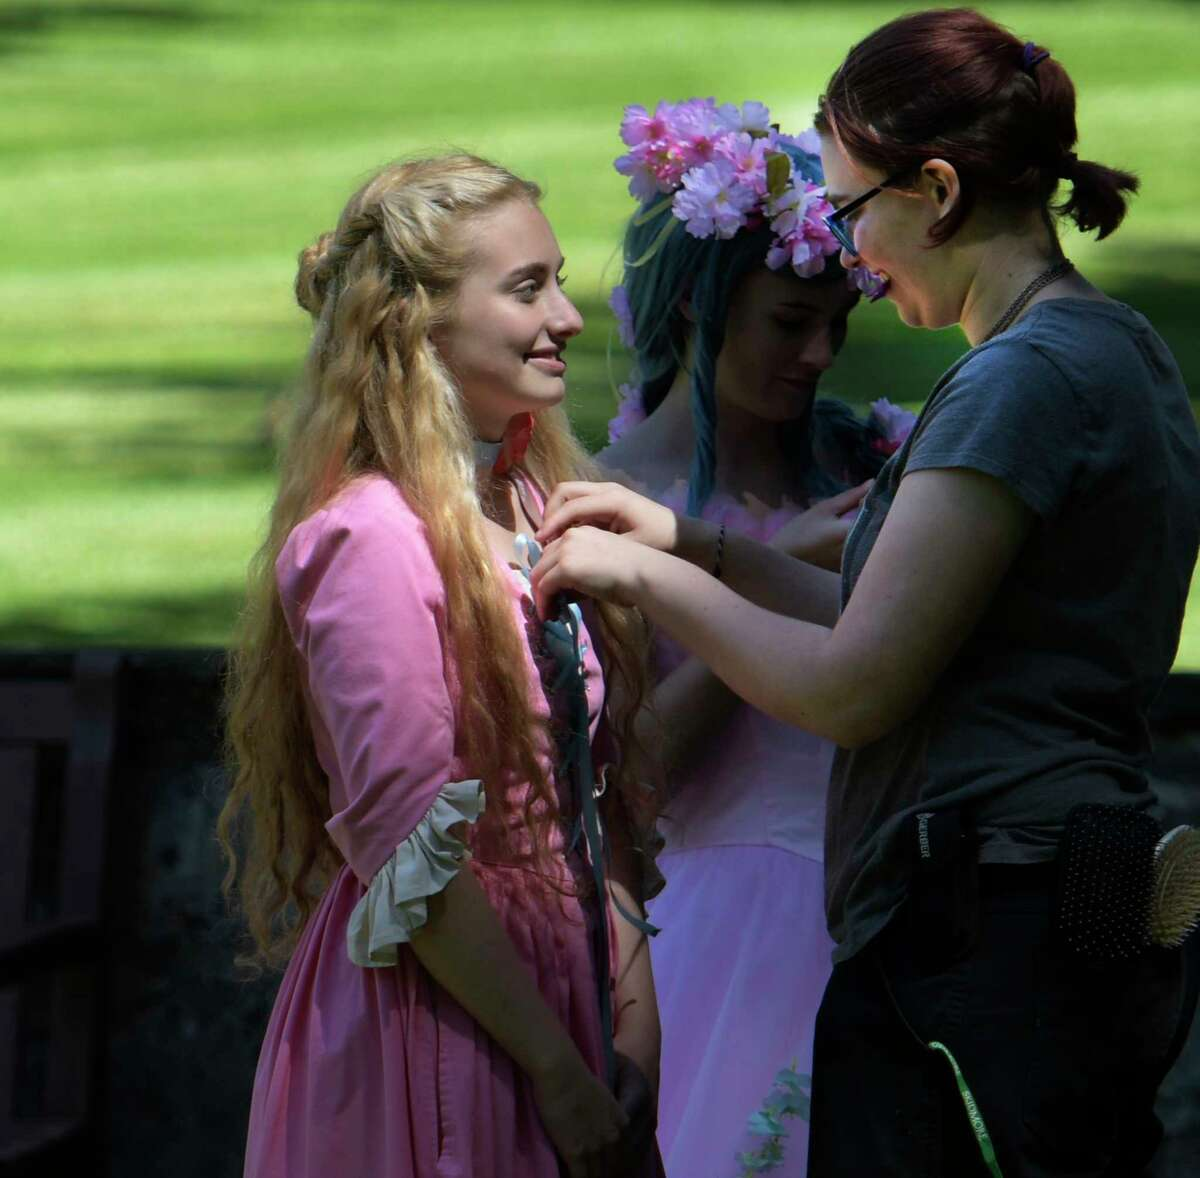 Actor Demetria Zorbas, 14 has her costume adjusted during the production of Rapunzel for Amazon TV which is underway on North Broadway Wednesday June 14, 2017 in Saratoga Springs, N.Y. (Skip Dickstein/Times Union)